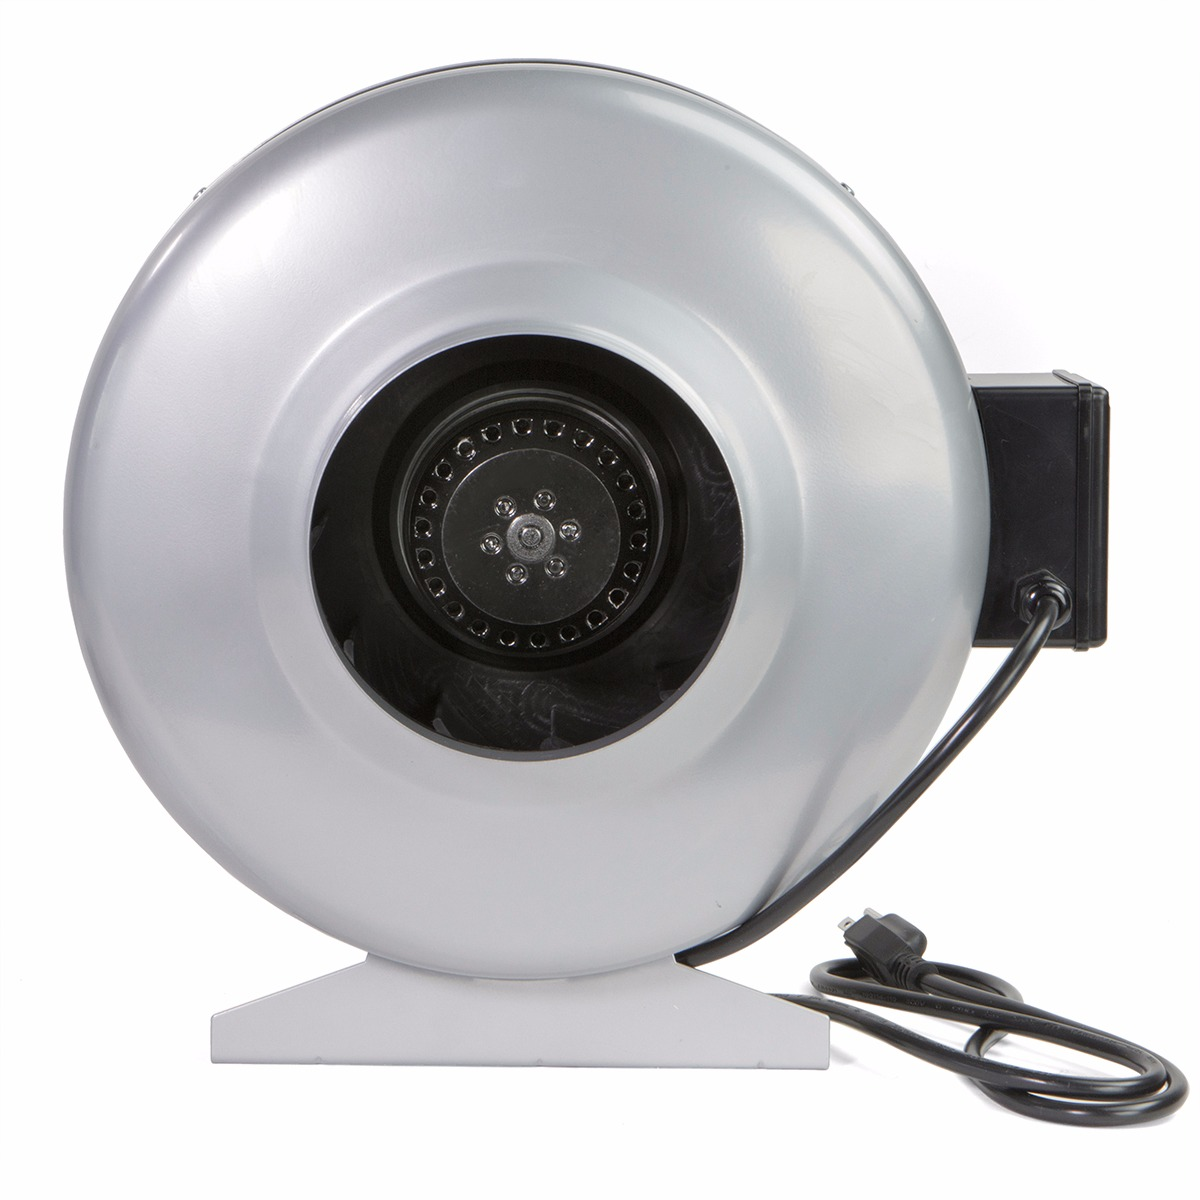 xtremepowerus 6 duct exhaust fan air blower with vent bracket silver